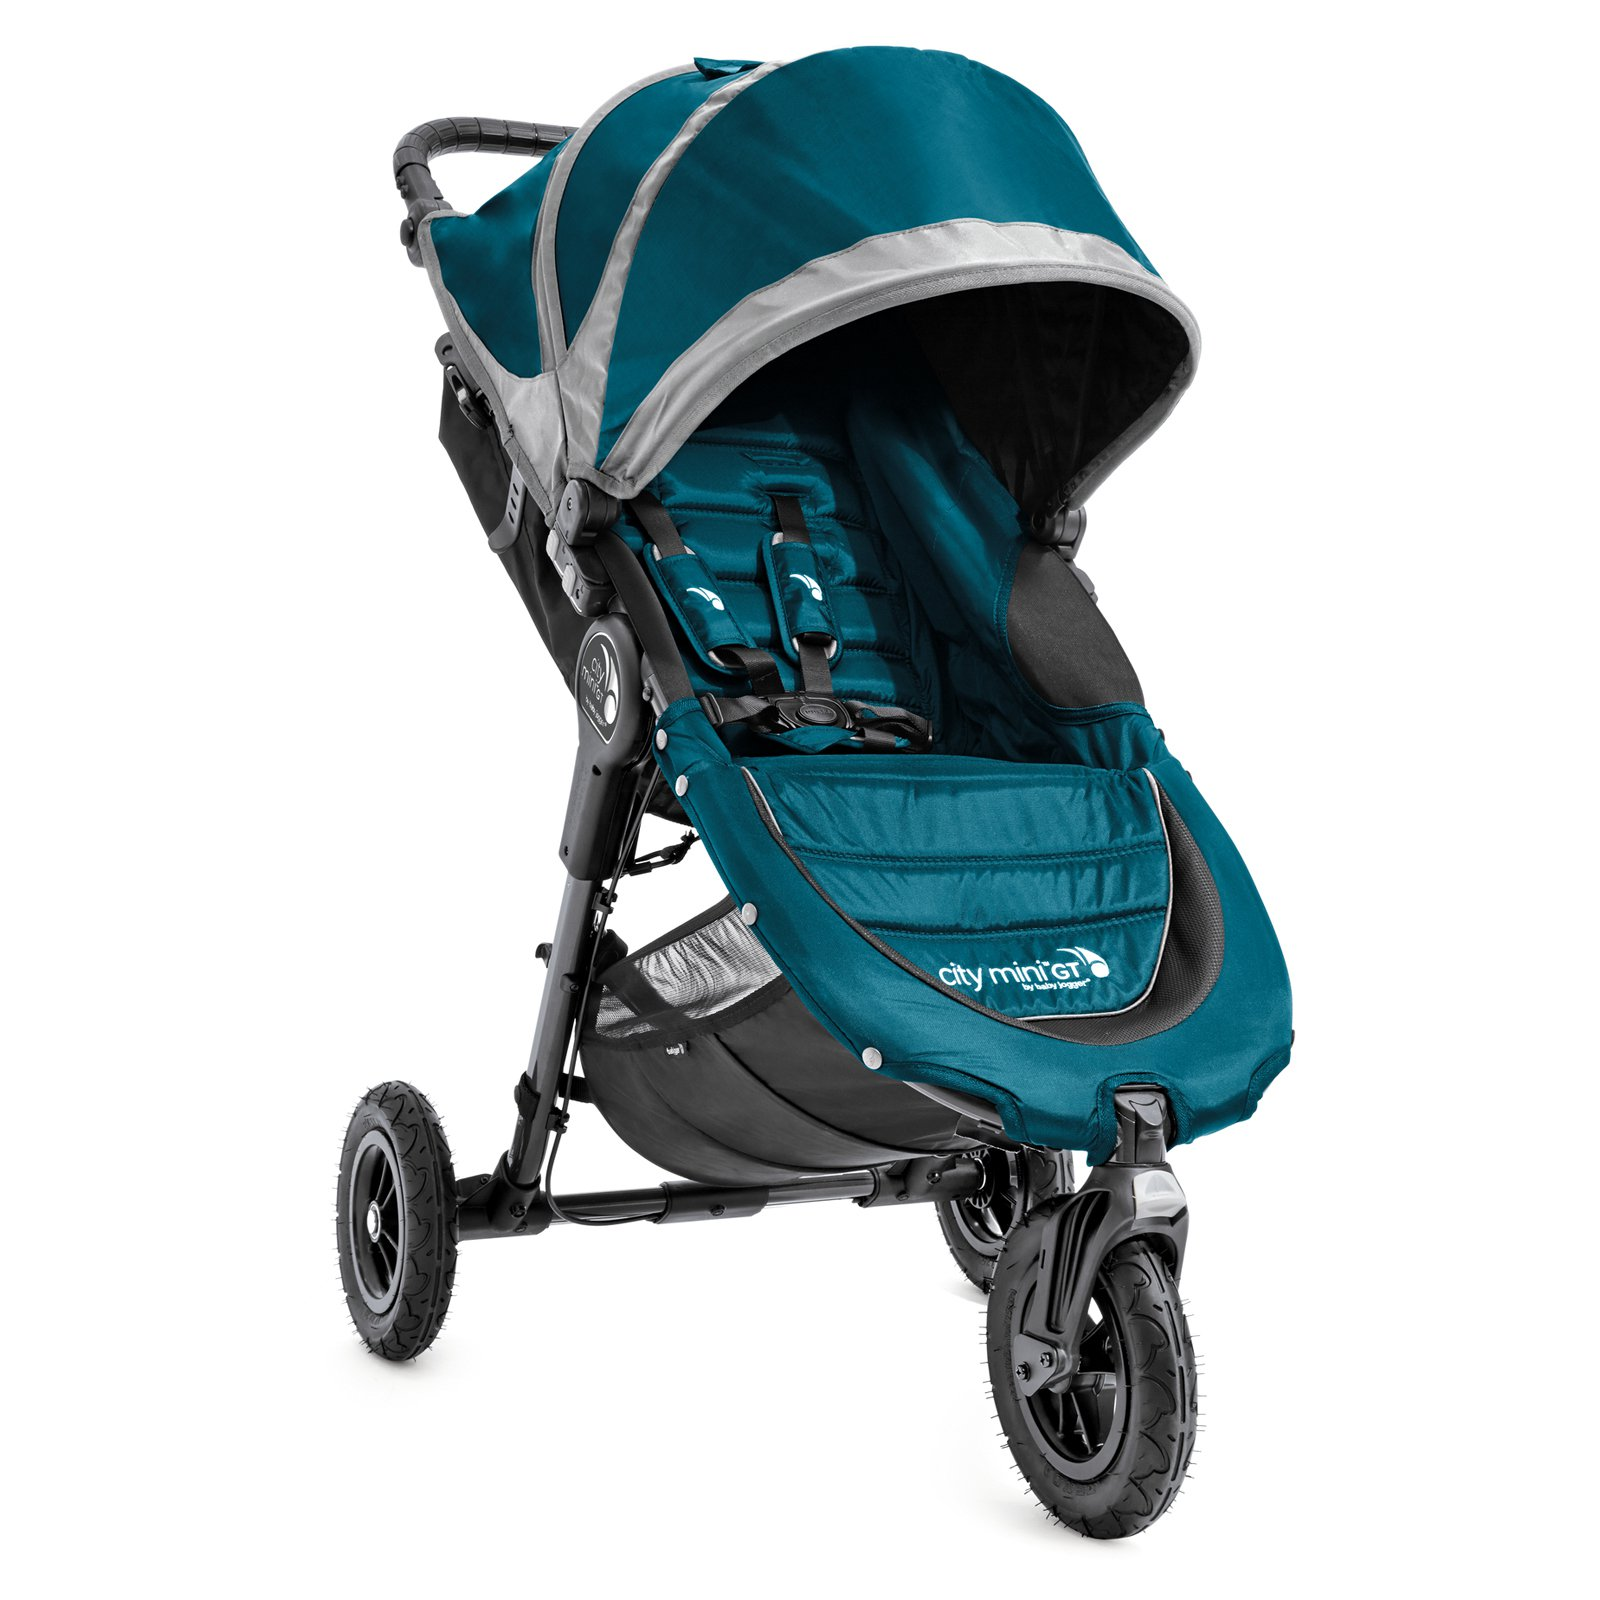 Baby Jogger 2016 City Mini GT Single Stroller- Teal/Gray